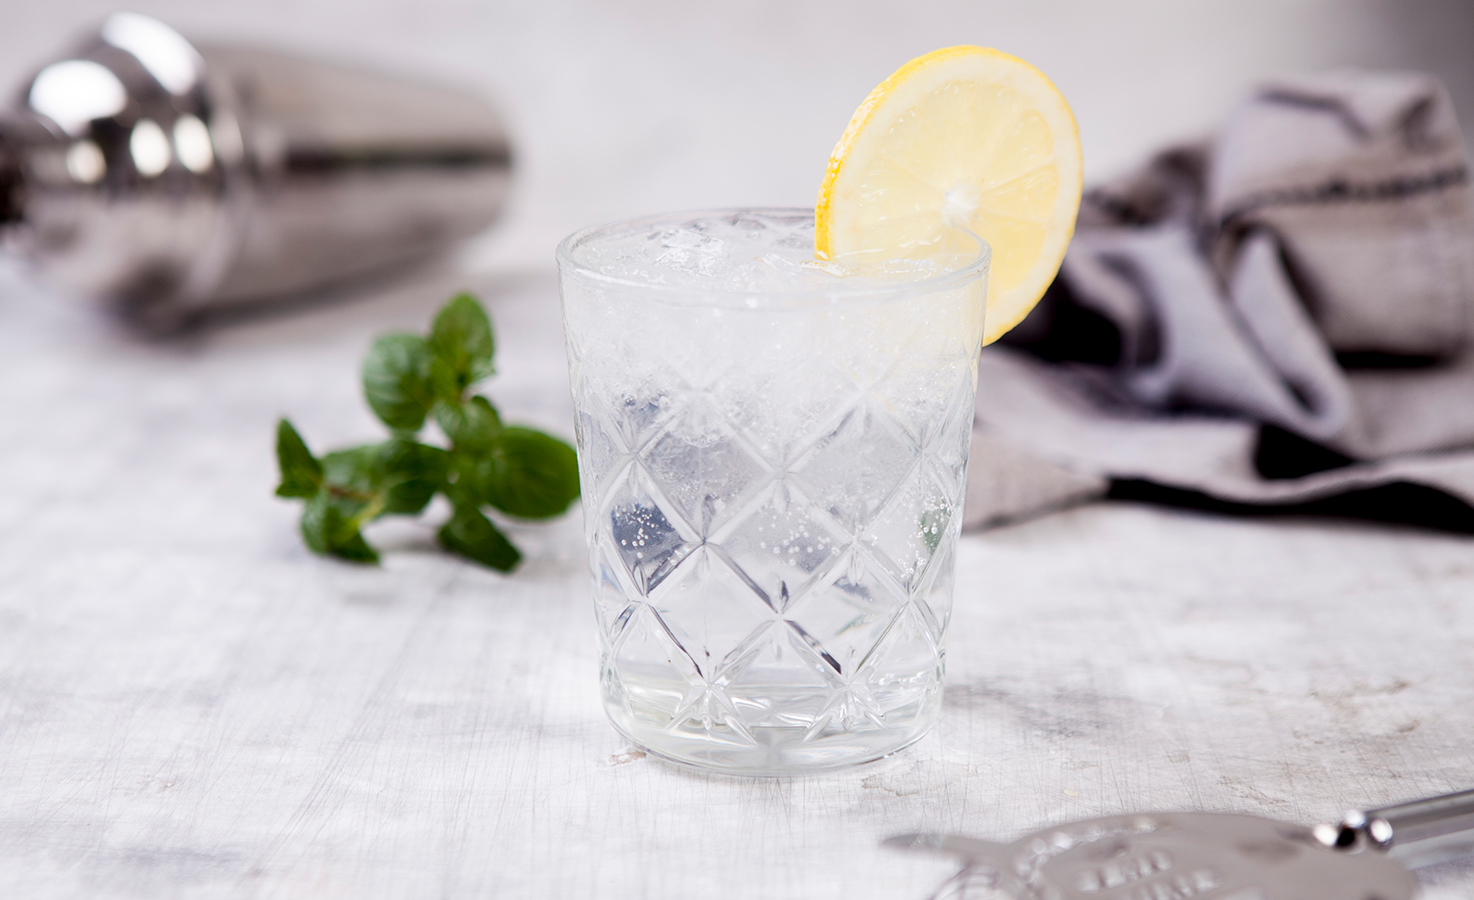 016_Bavarian-Pure-Next-Level-Gin-Gin-TonicECUZxYl3zIpwS